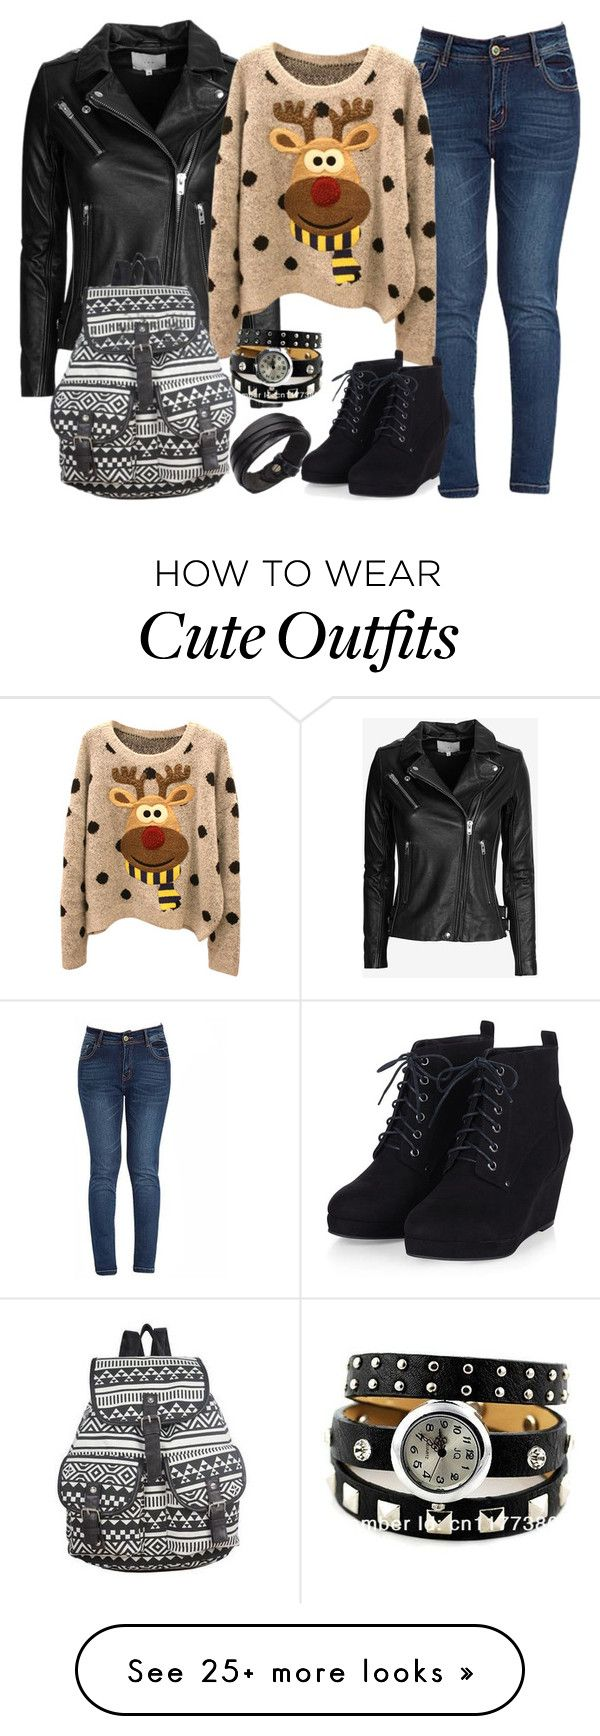 """""""School Cute Outfit"""" by myfriendshop on Polyvore featuring IRO, women's clothing, women's fashion, women, female, woman, misses and juniors"""